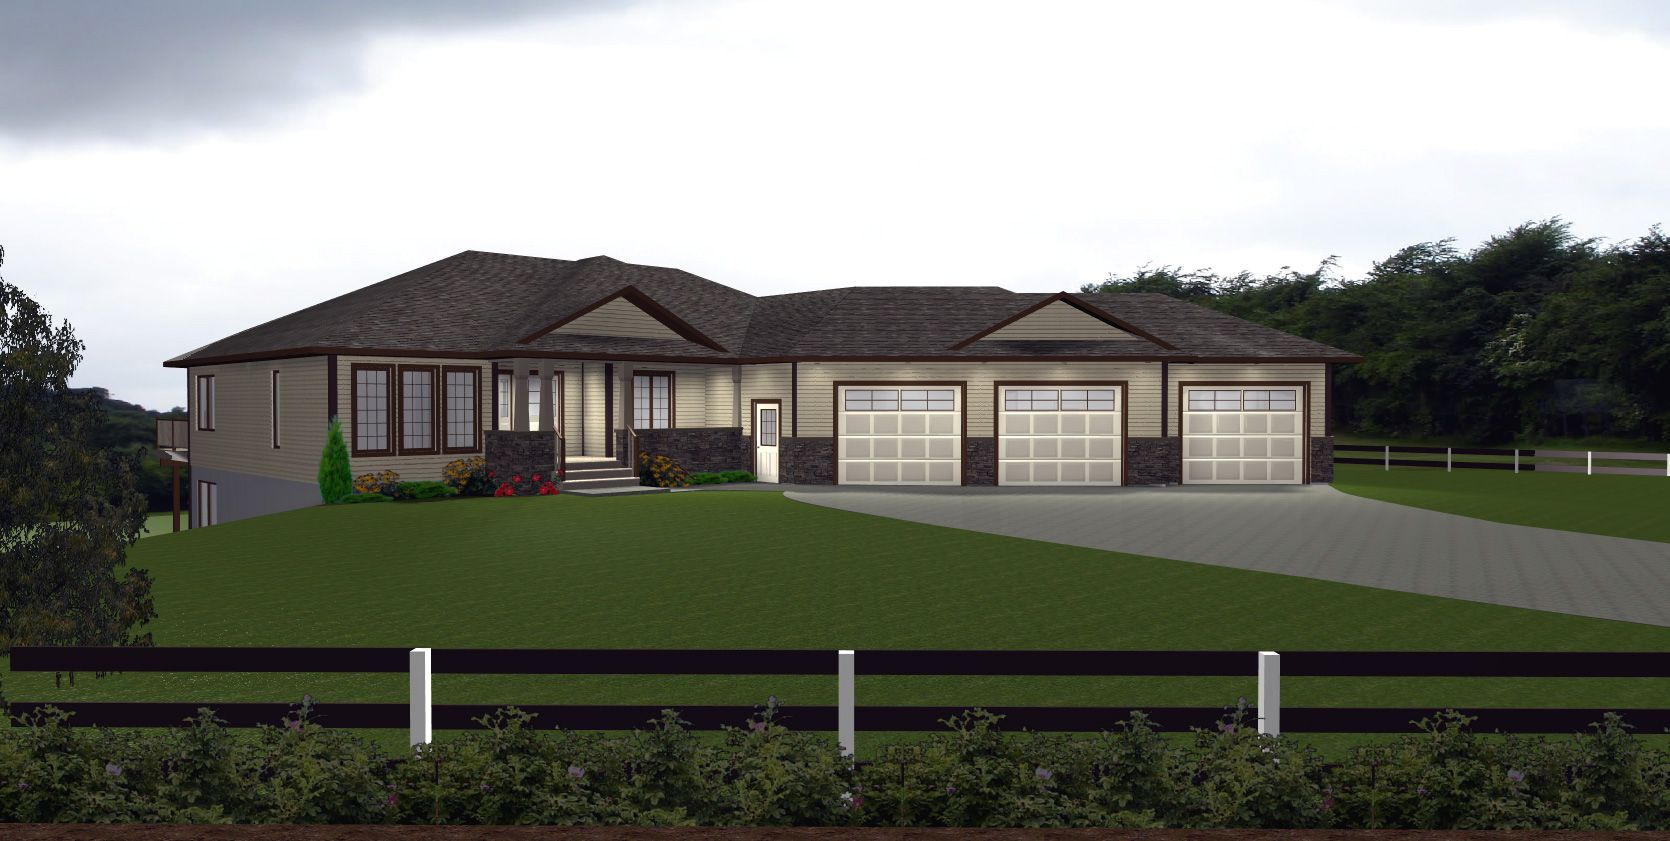 Inside garage ideas garage by e designs house plans for Ranch house plans with basement 3 car garage